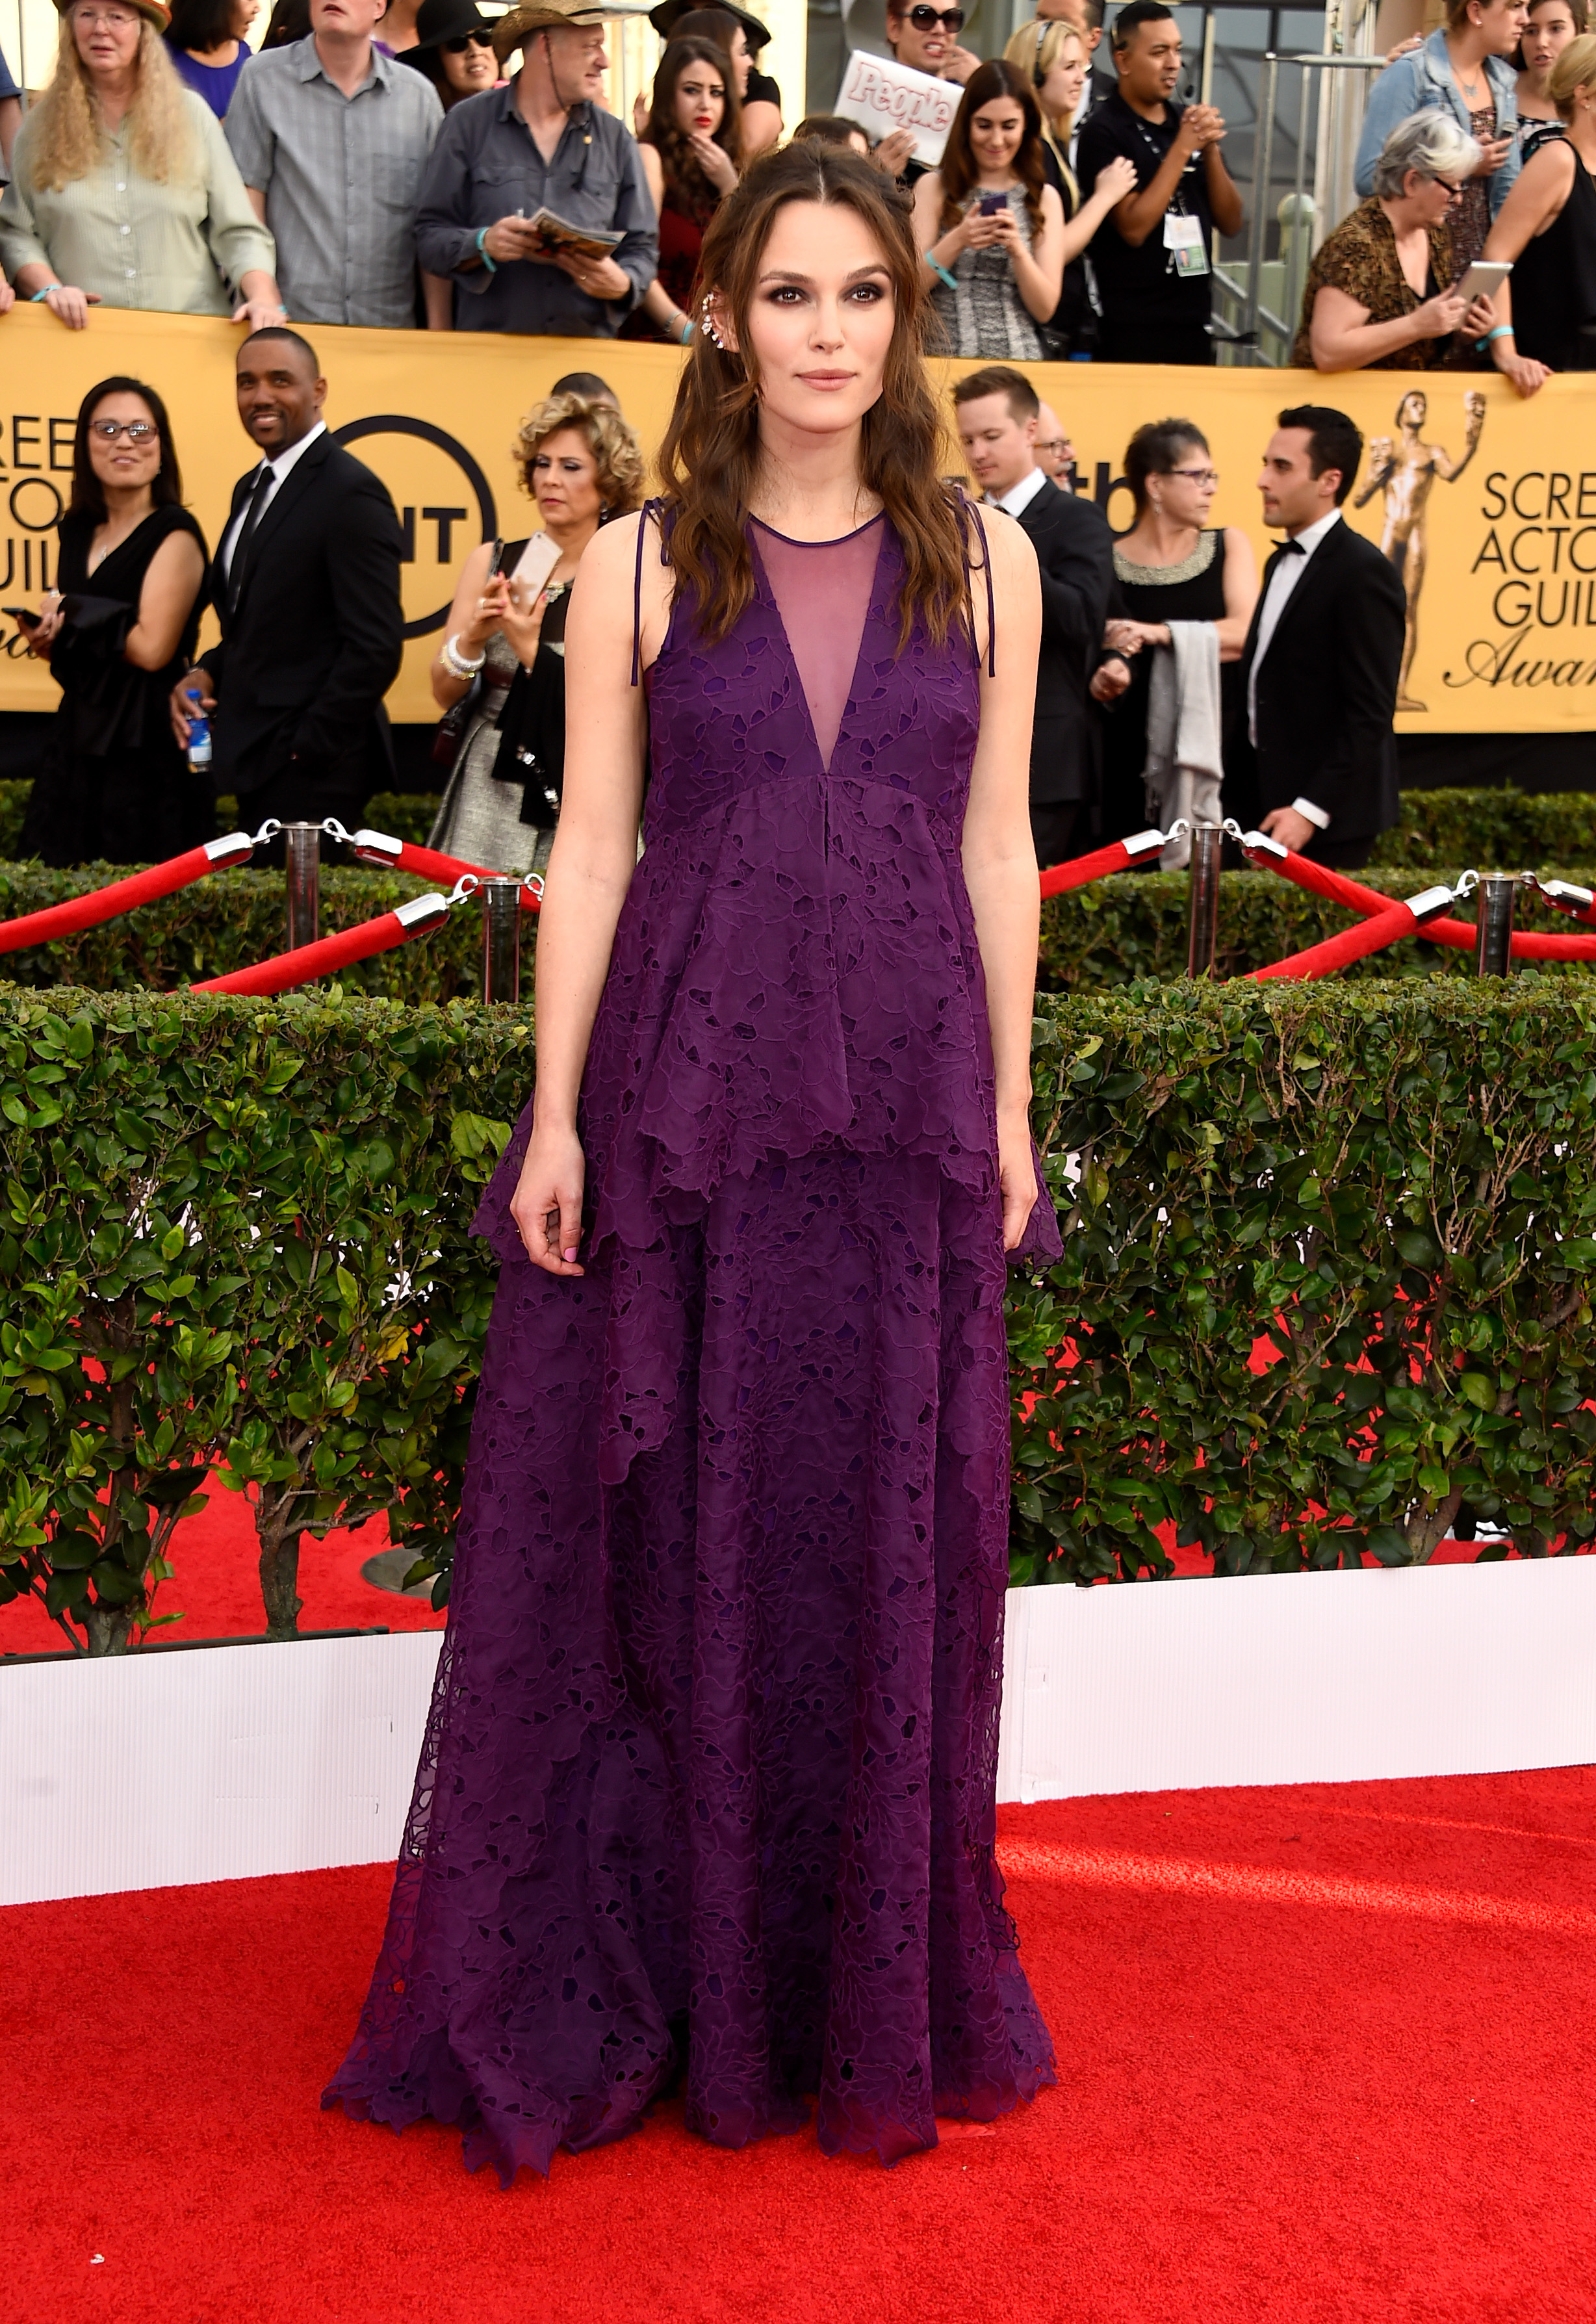 Keira Knightley at the 2015 SAG Awards